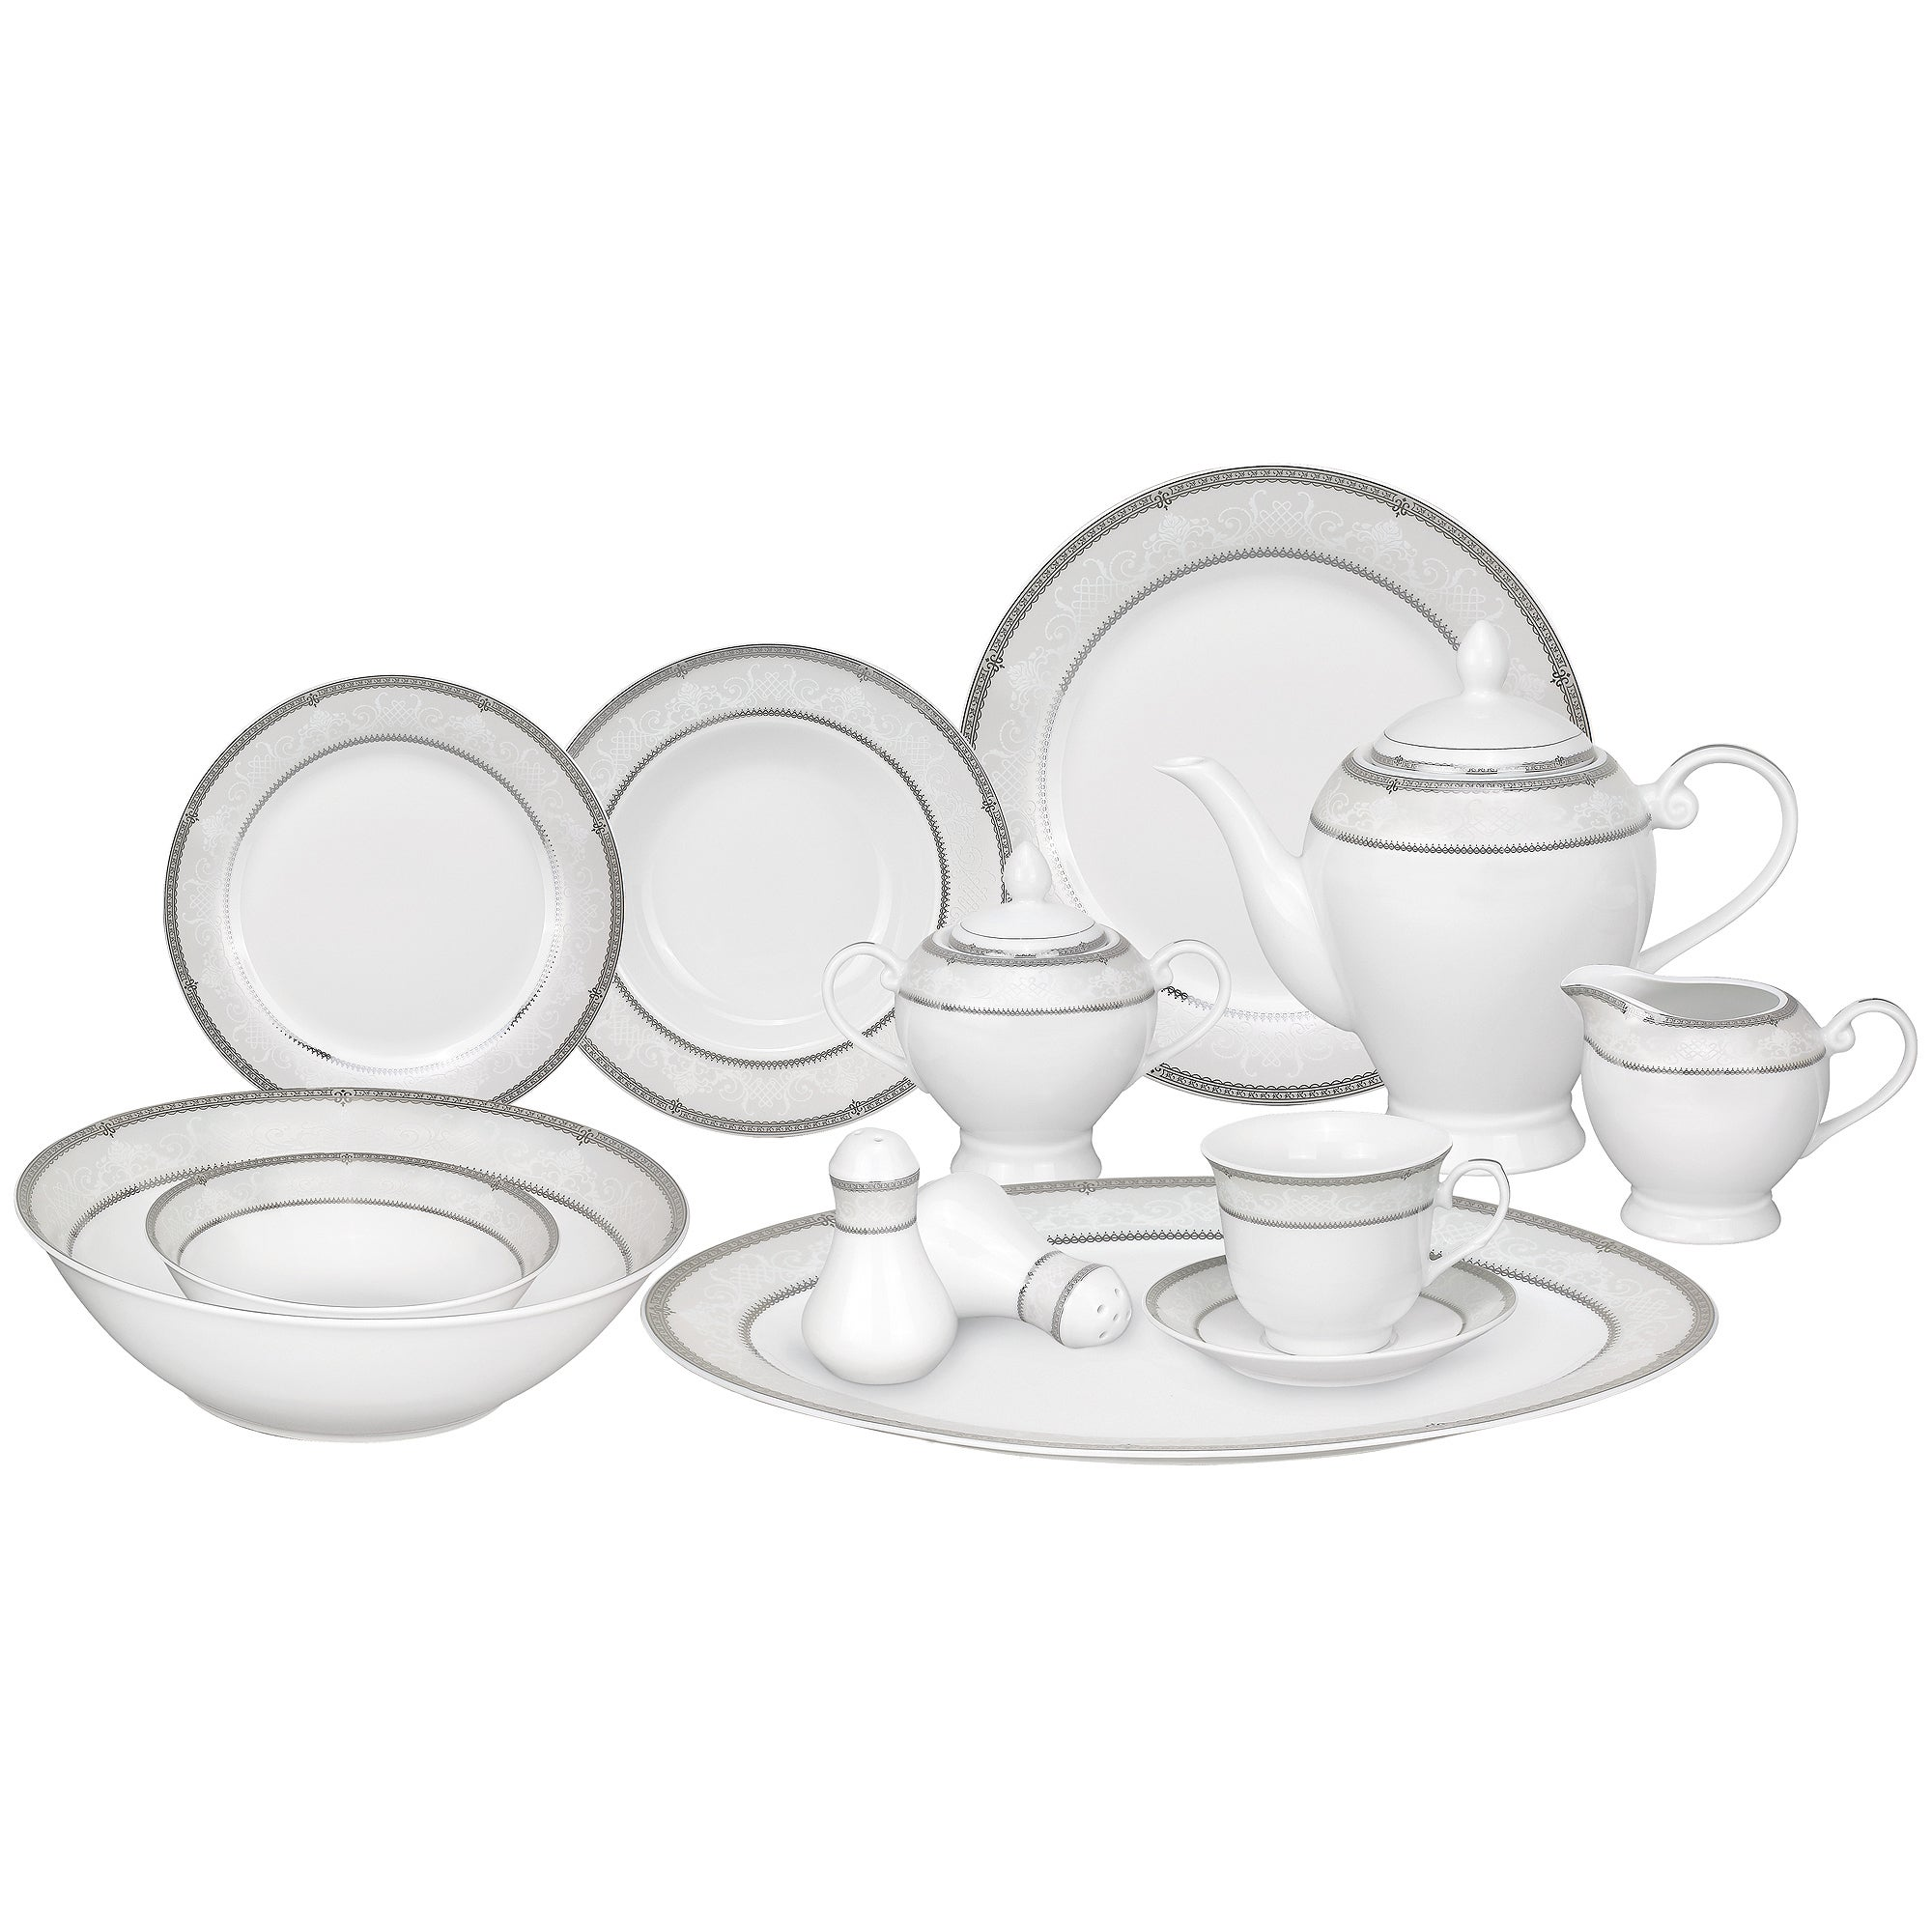 f3e27727c8cd Buy Formal Dinnerware Online at Overstock | Our Best Dinnerware Deals